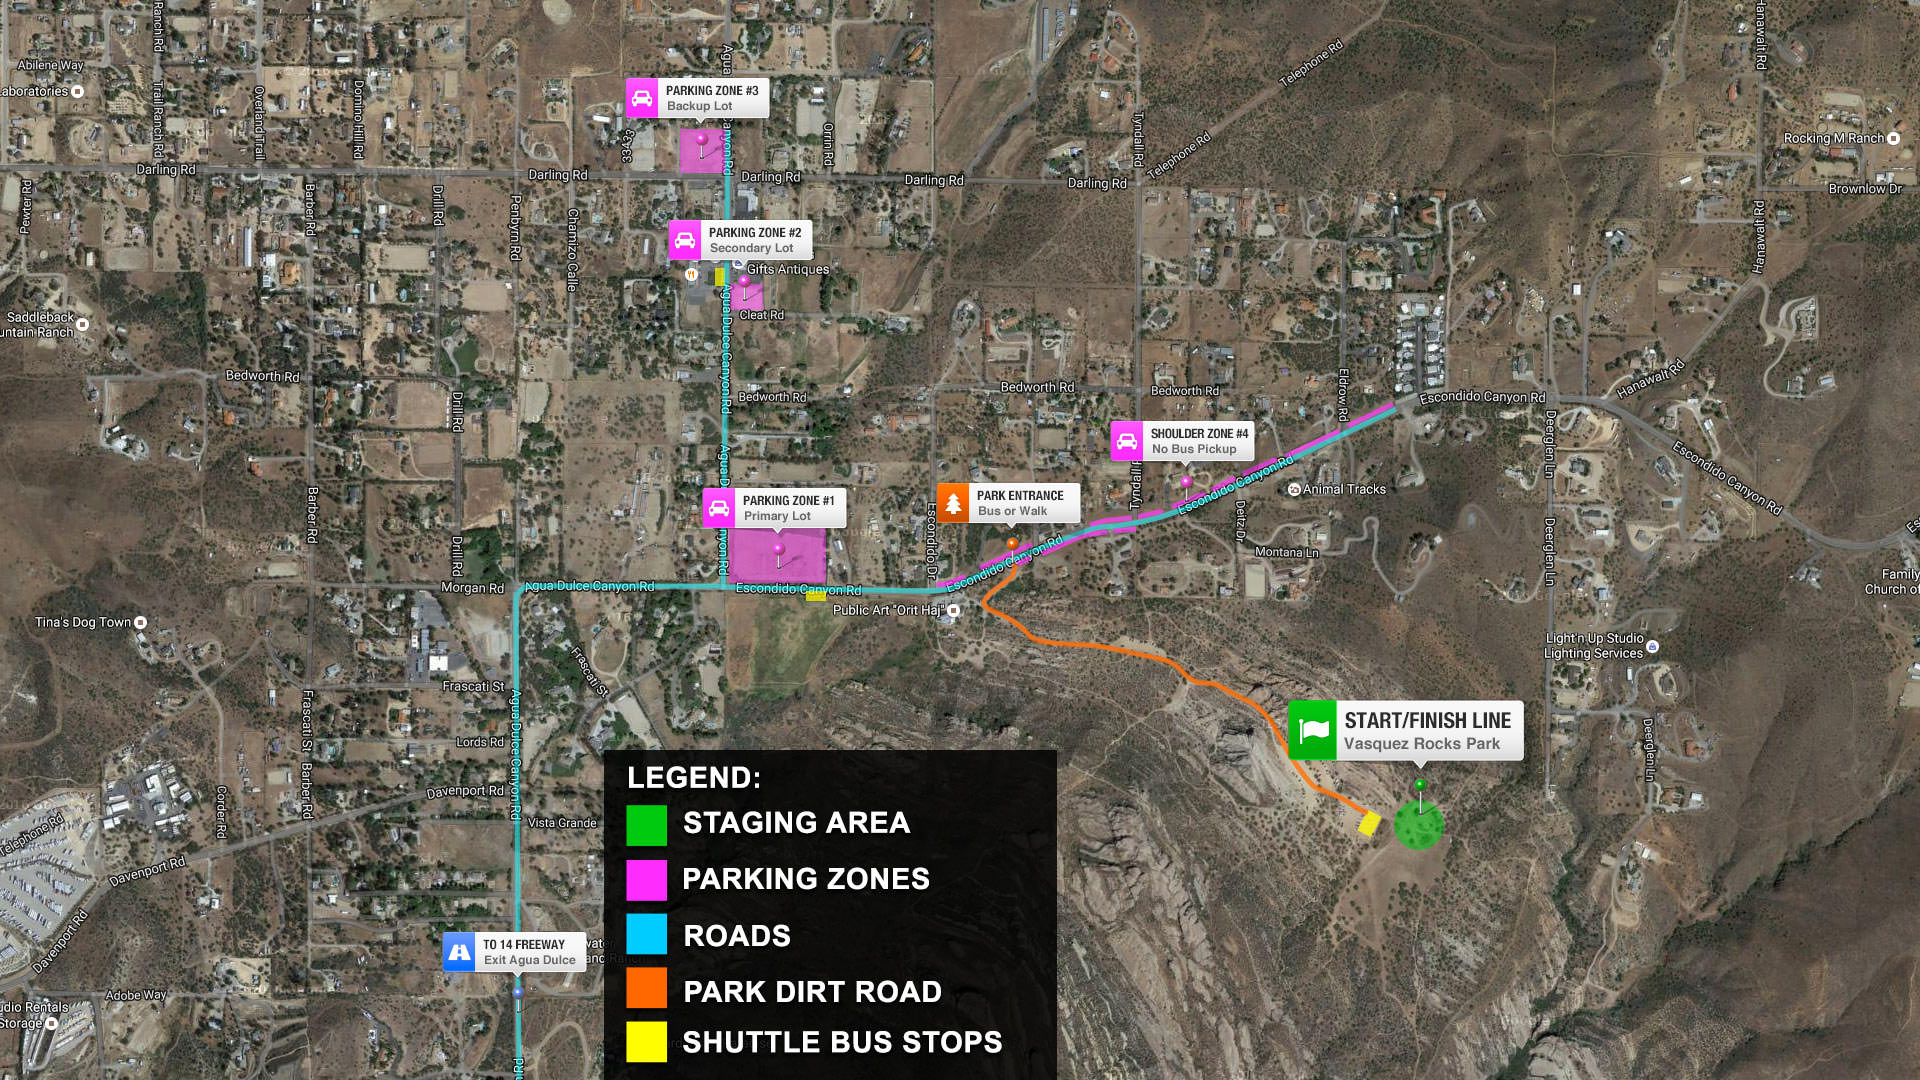 SPACEROCK Trail Race Parking Map